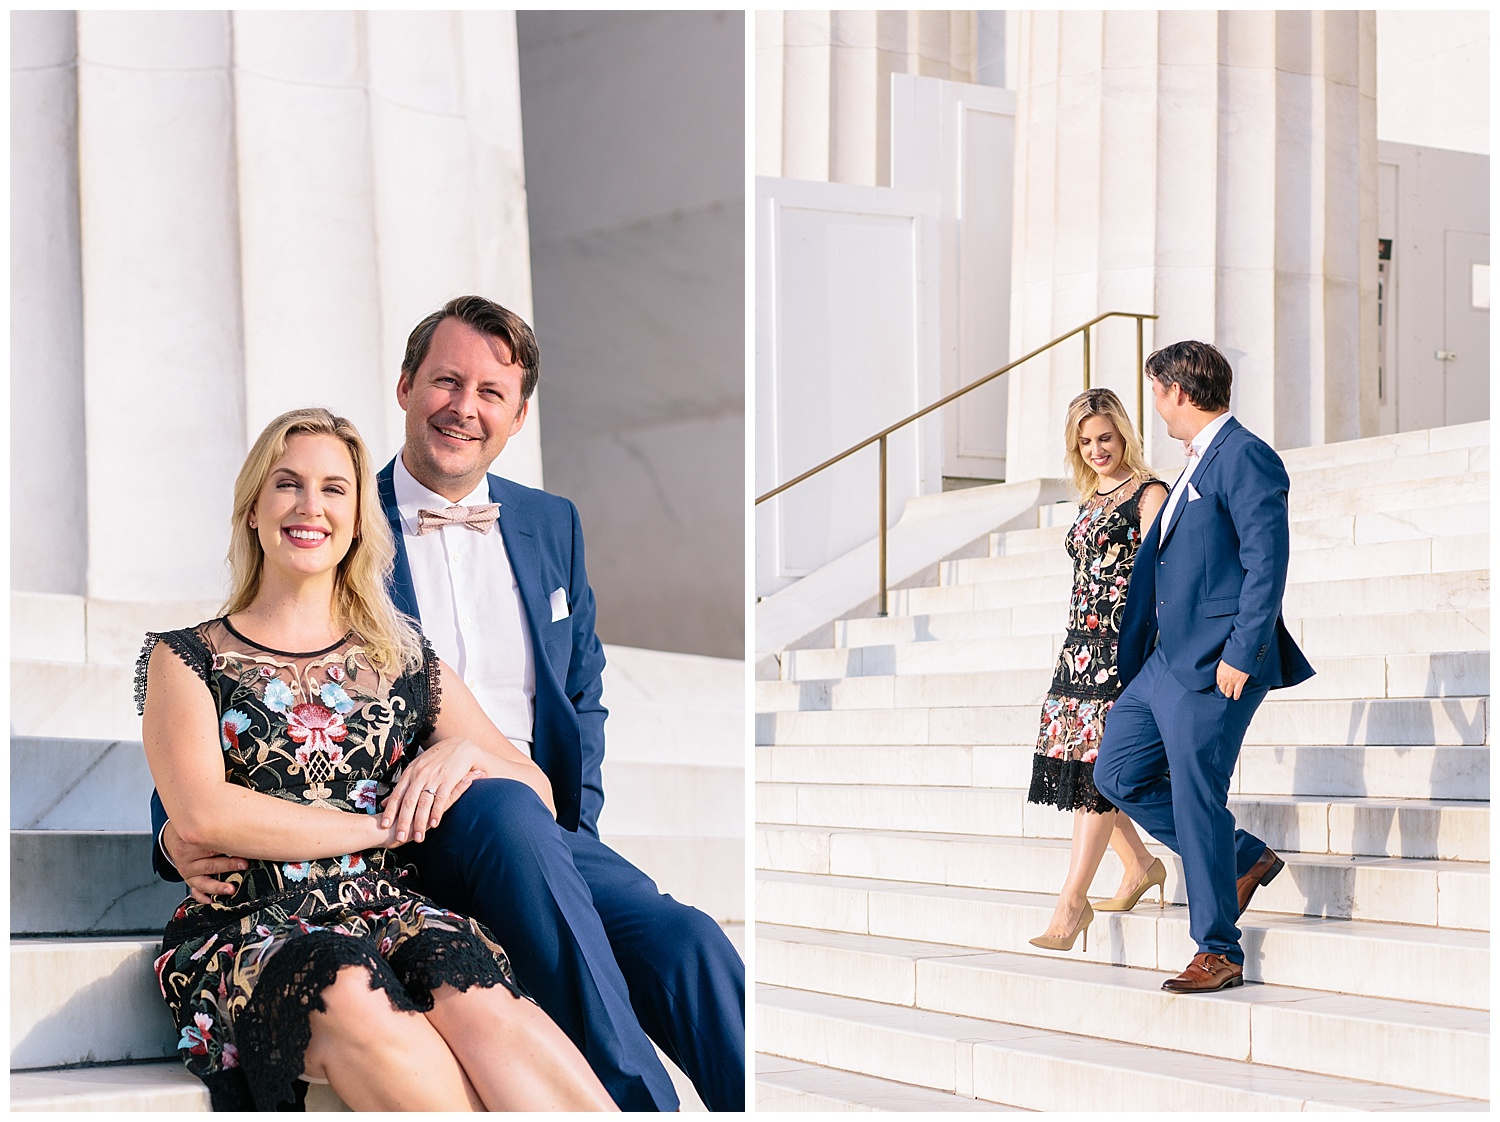 emily-belson-photography-washington-dc-engagement-emily-john-03.jpg